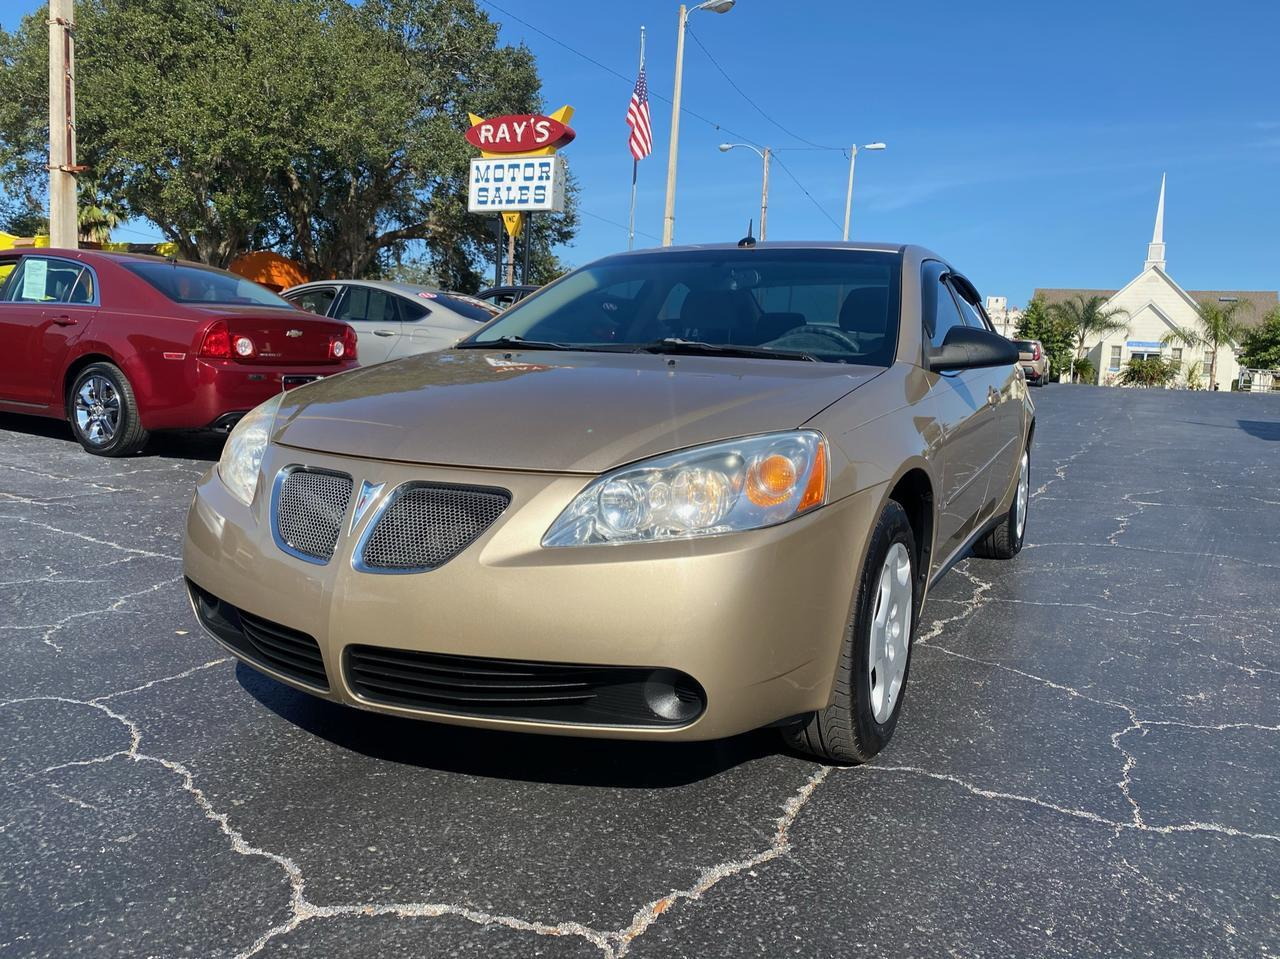 2008 Pontiac G6 1SV Value Leader